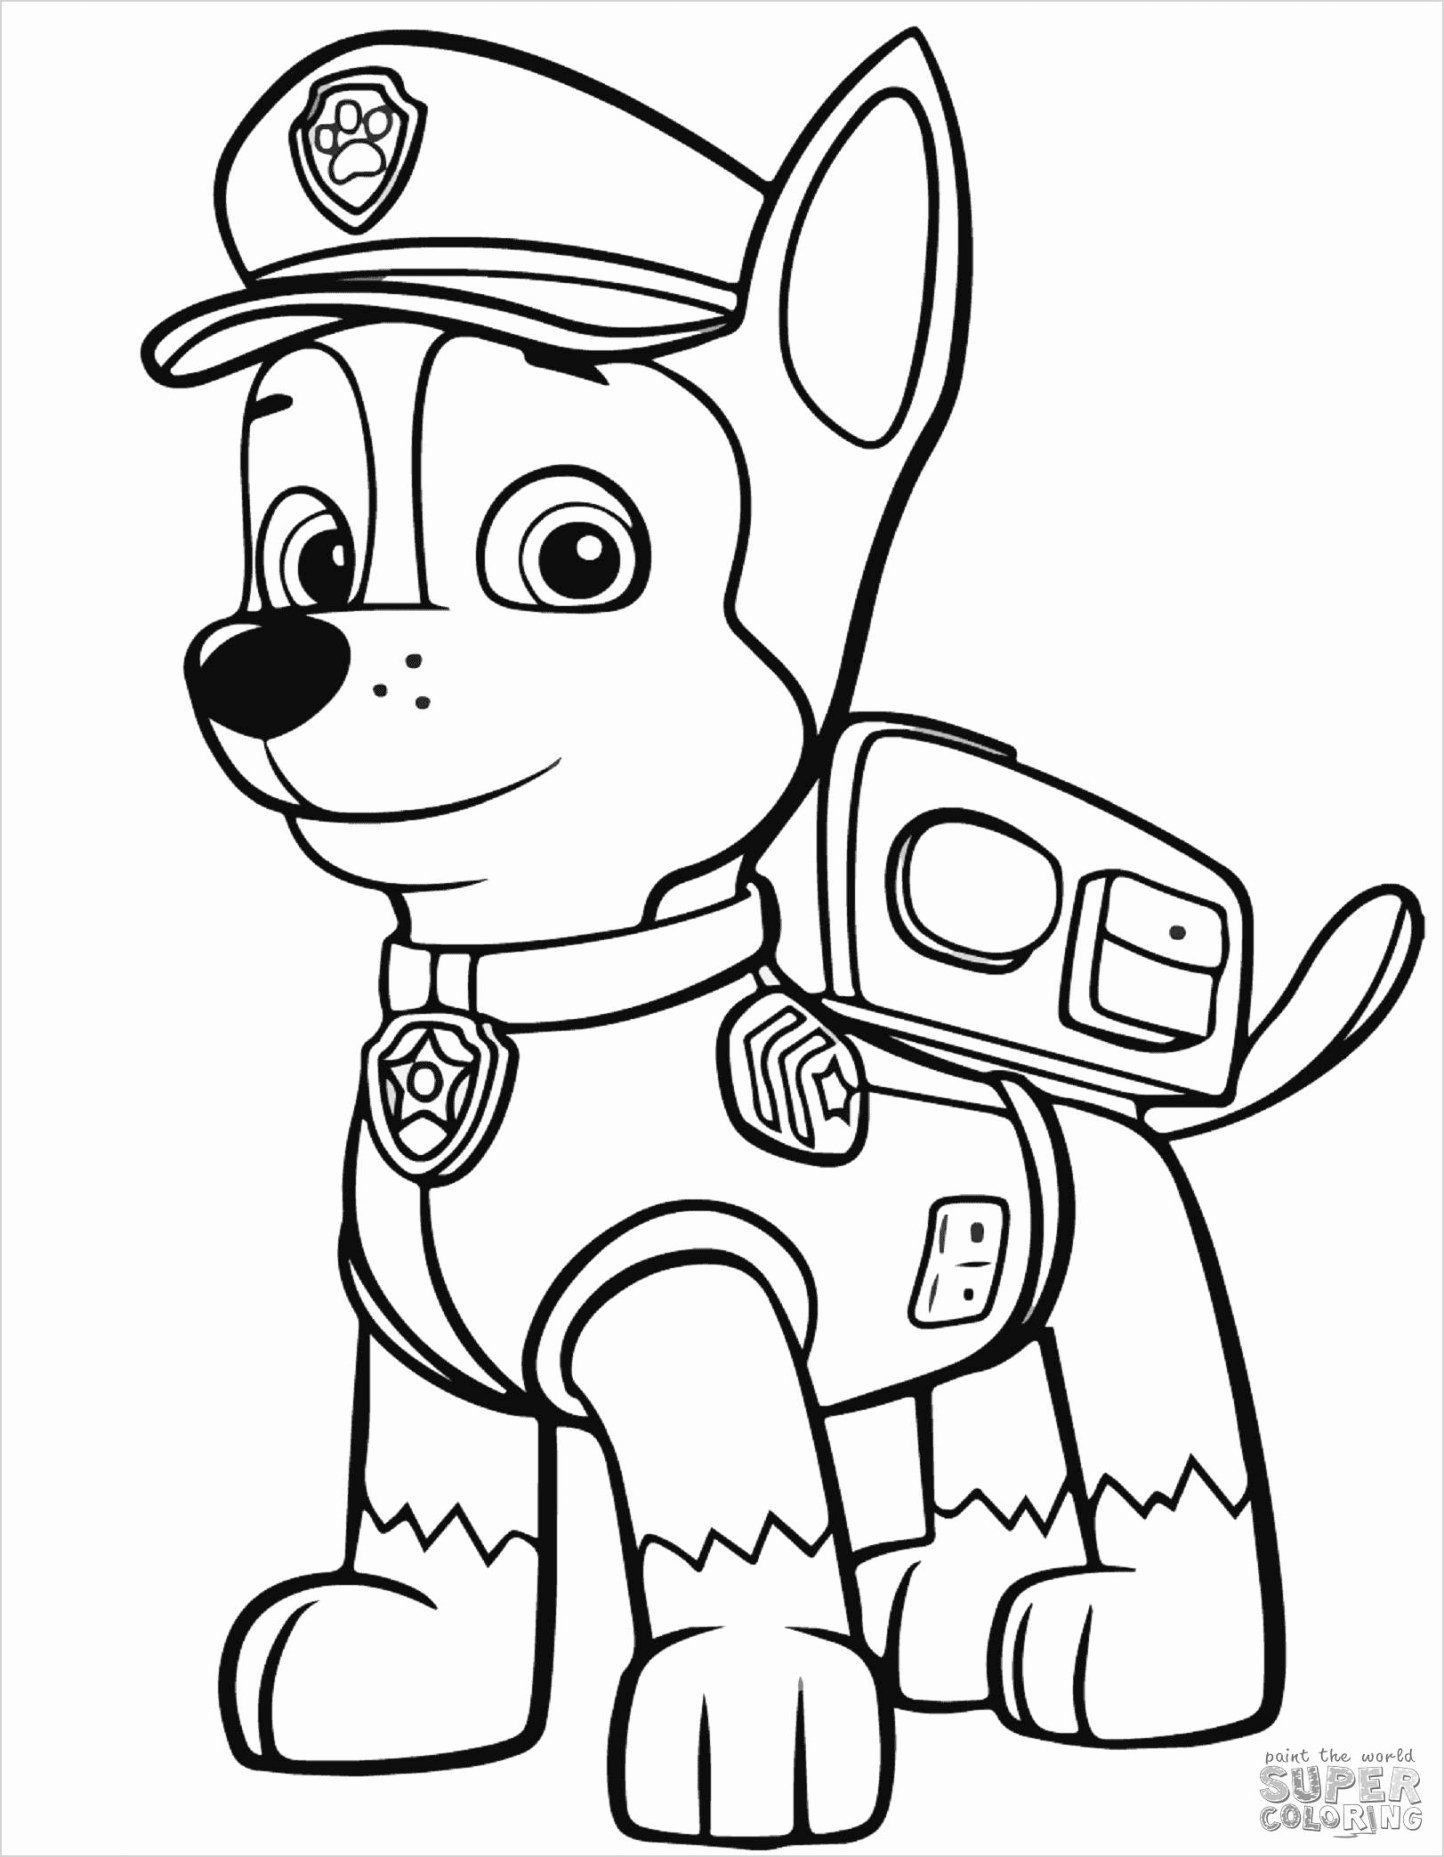 Coloring Pages Of Nature Luxury Best Paw Patrol Coloring Page Coloring Pages Dogs Best Paw Patrol Coloring Paw Patrol Coloring Pages Chase Paw Patrol